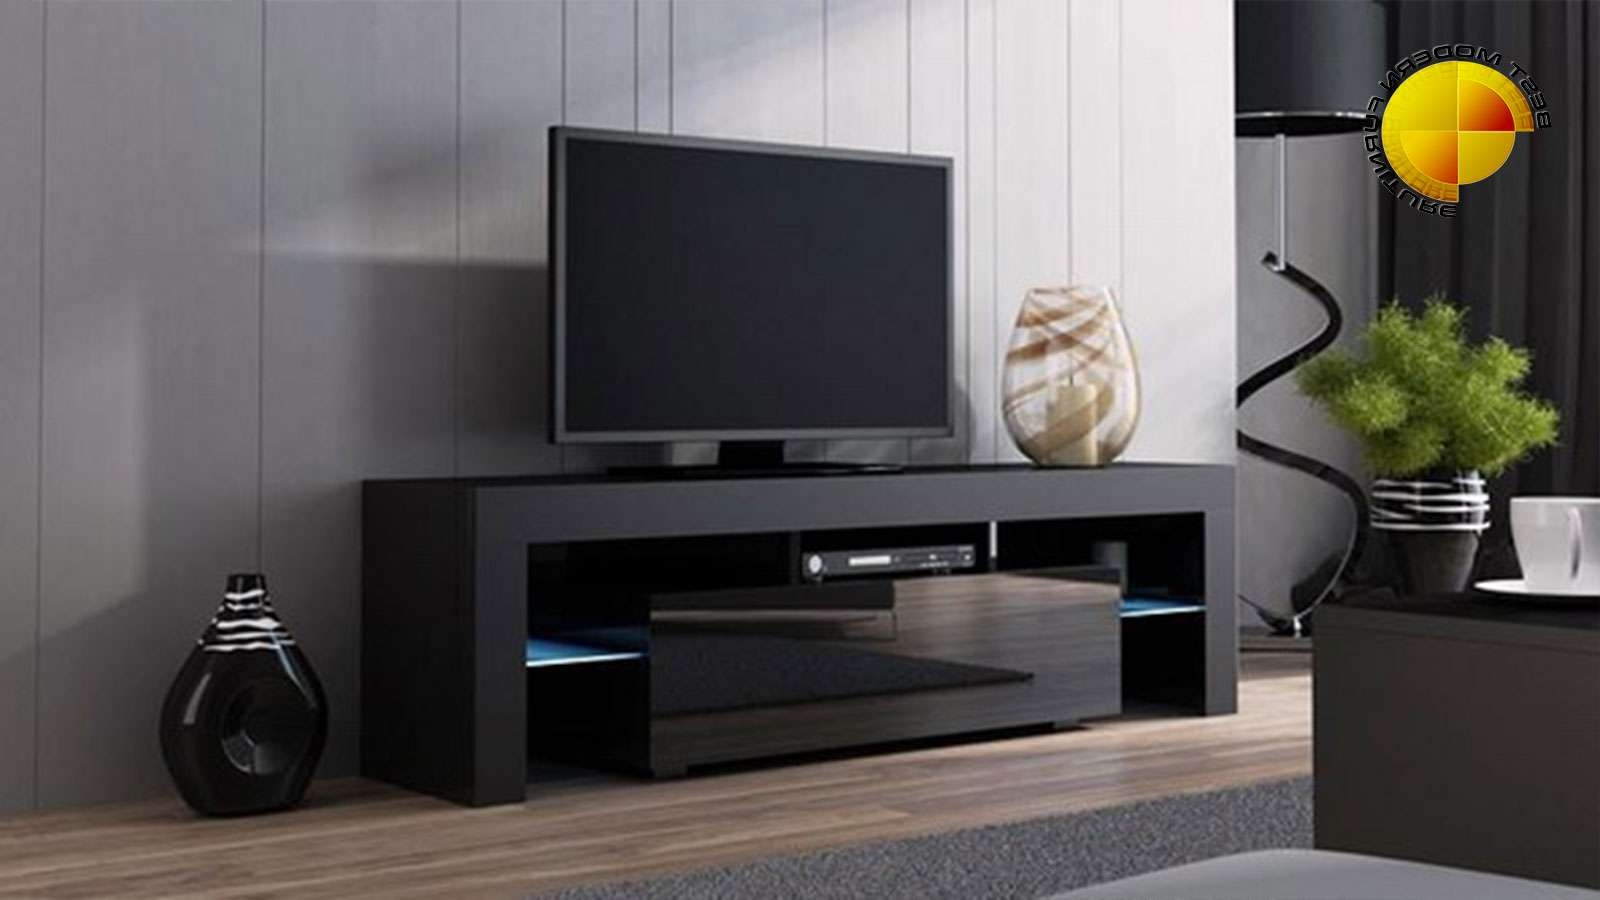 Modern Tv Stand 160cm High Gloss Cabinet Rgb Led Lights Black Unit Intended For Tv Cabinets Black High Gloss (View 3 of 20)